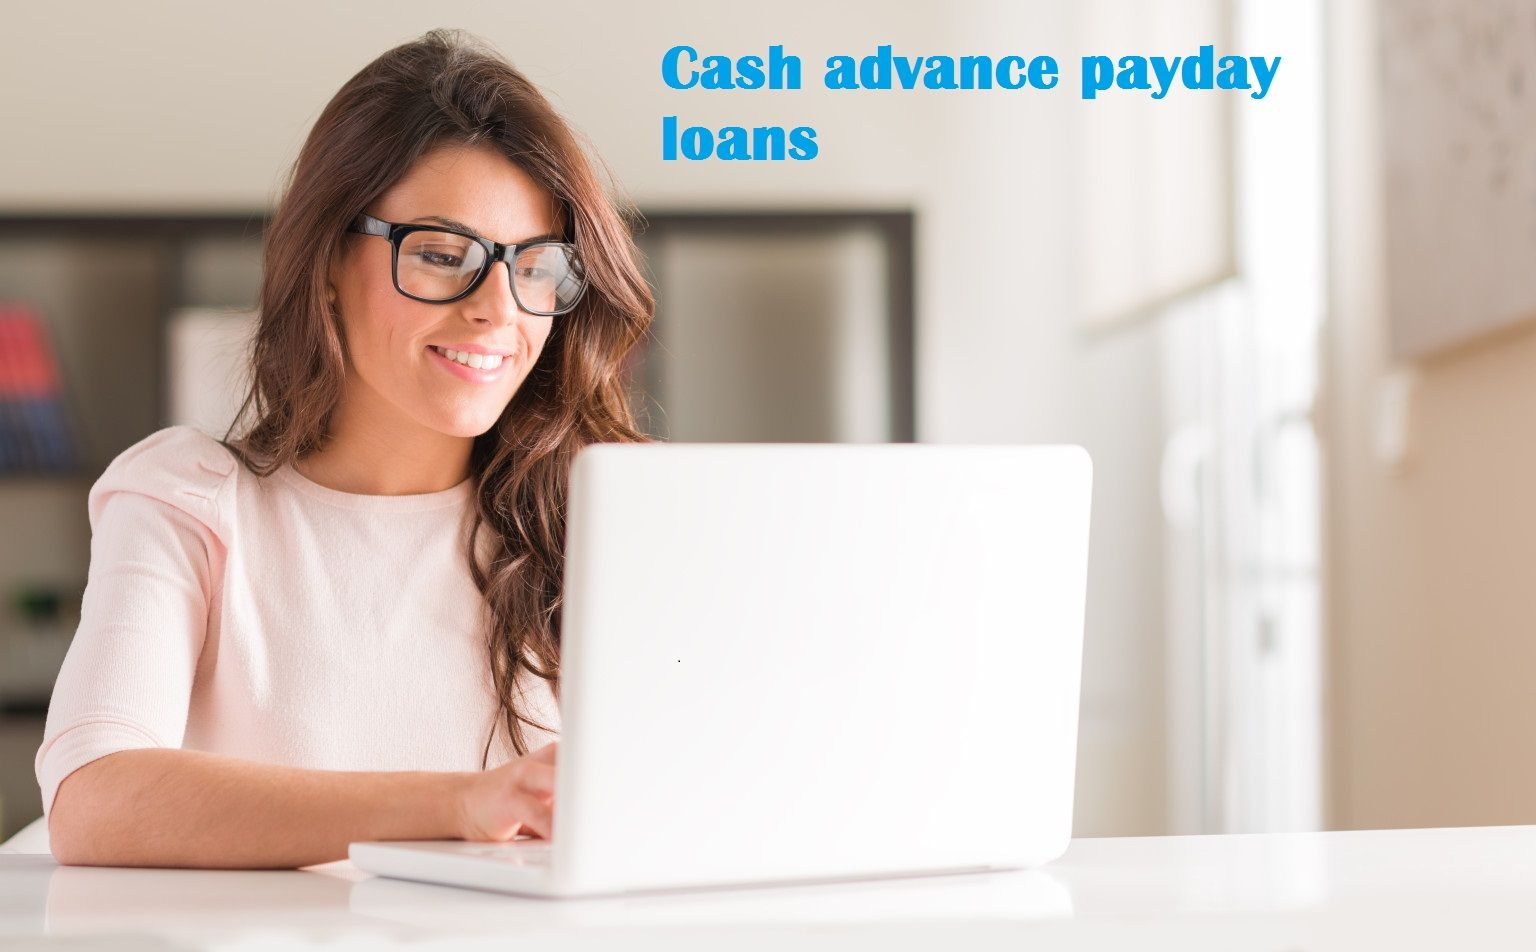 Cash Advance Loans Designed For Affording Small Fast Cash Needs Payday Loans Online Payday Loans No Credit Loans